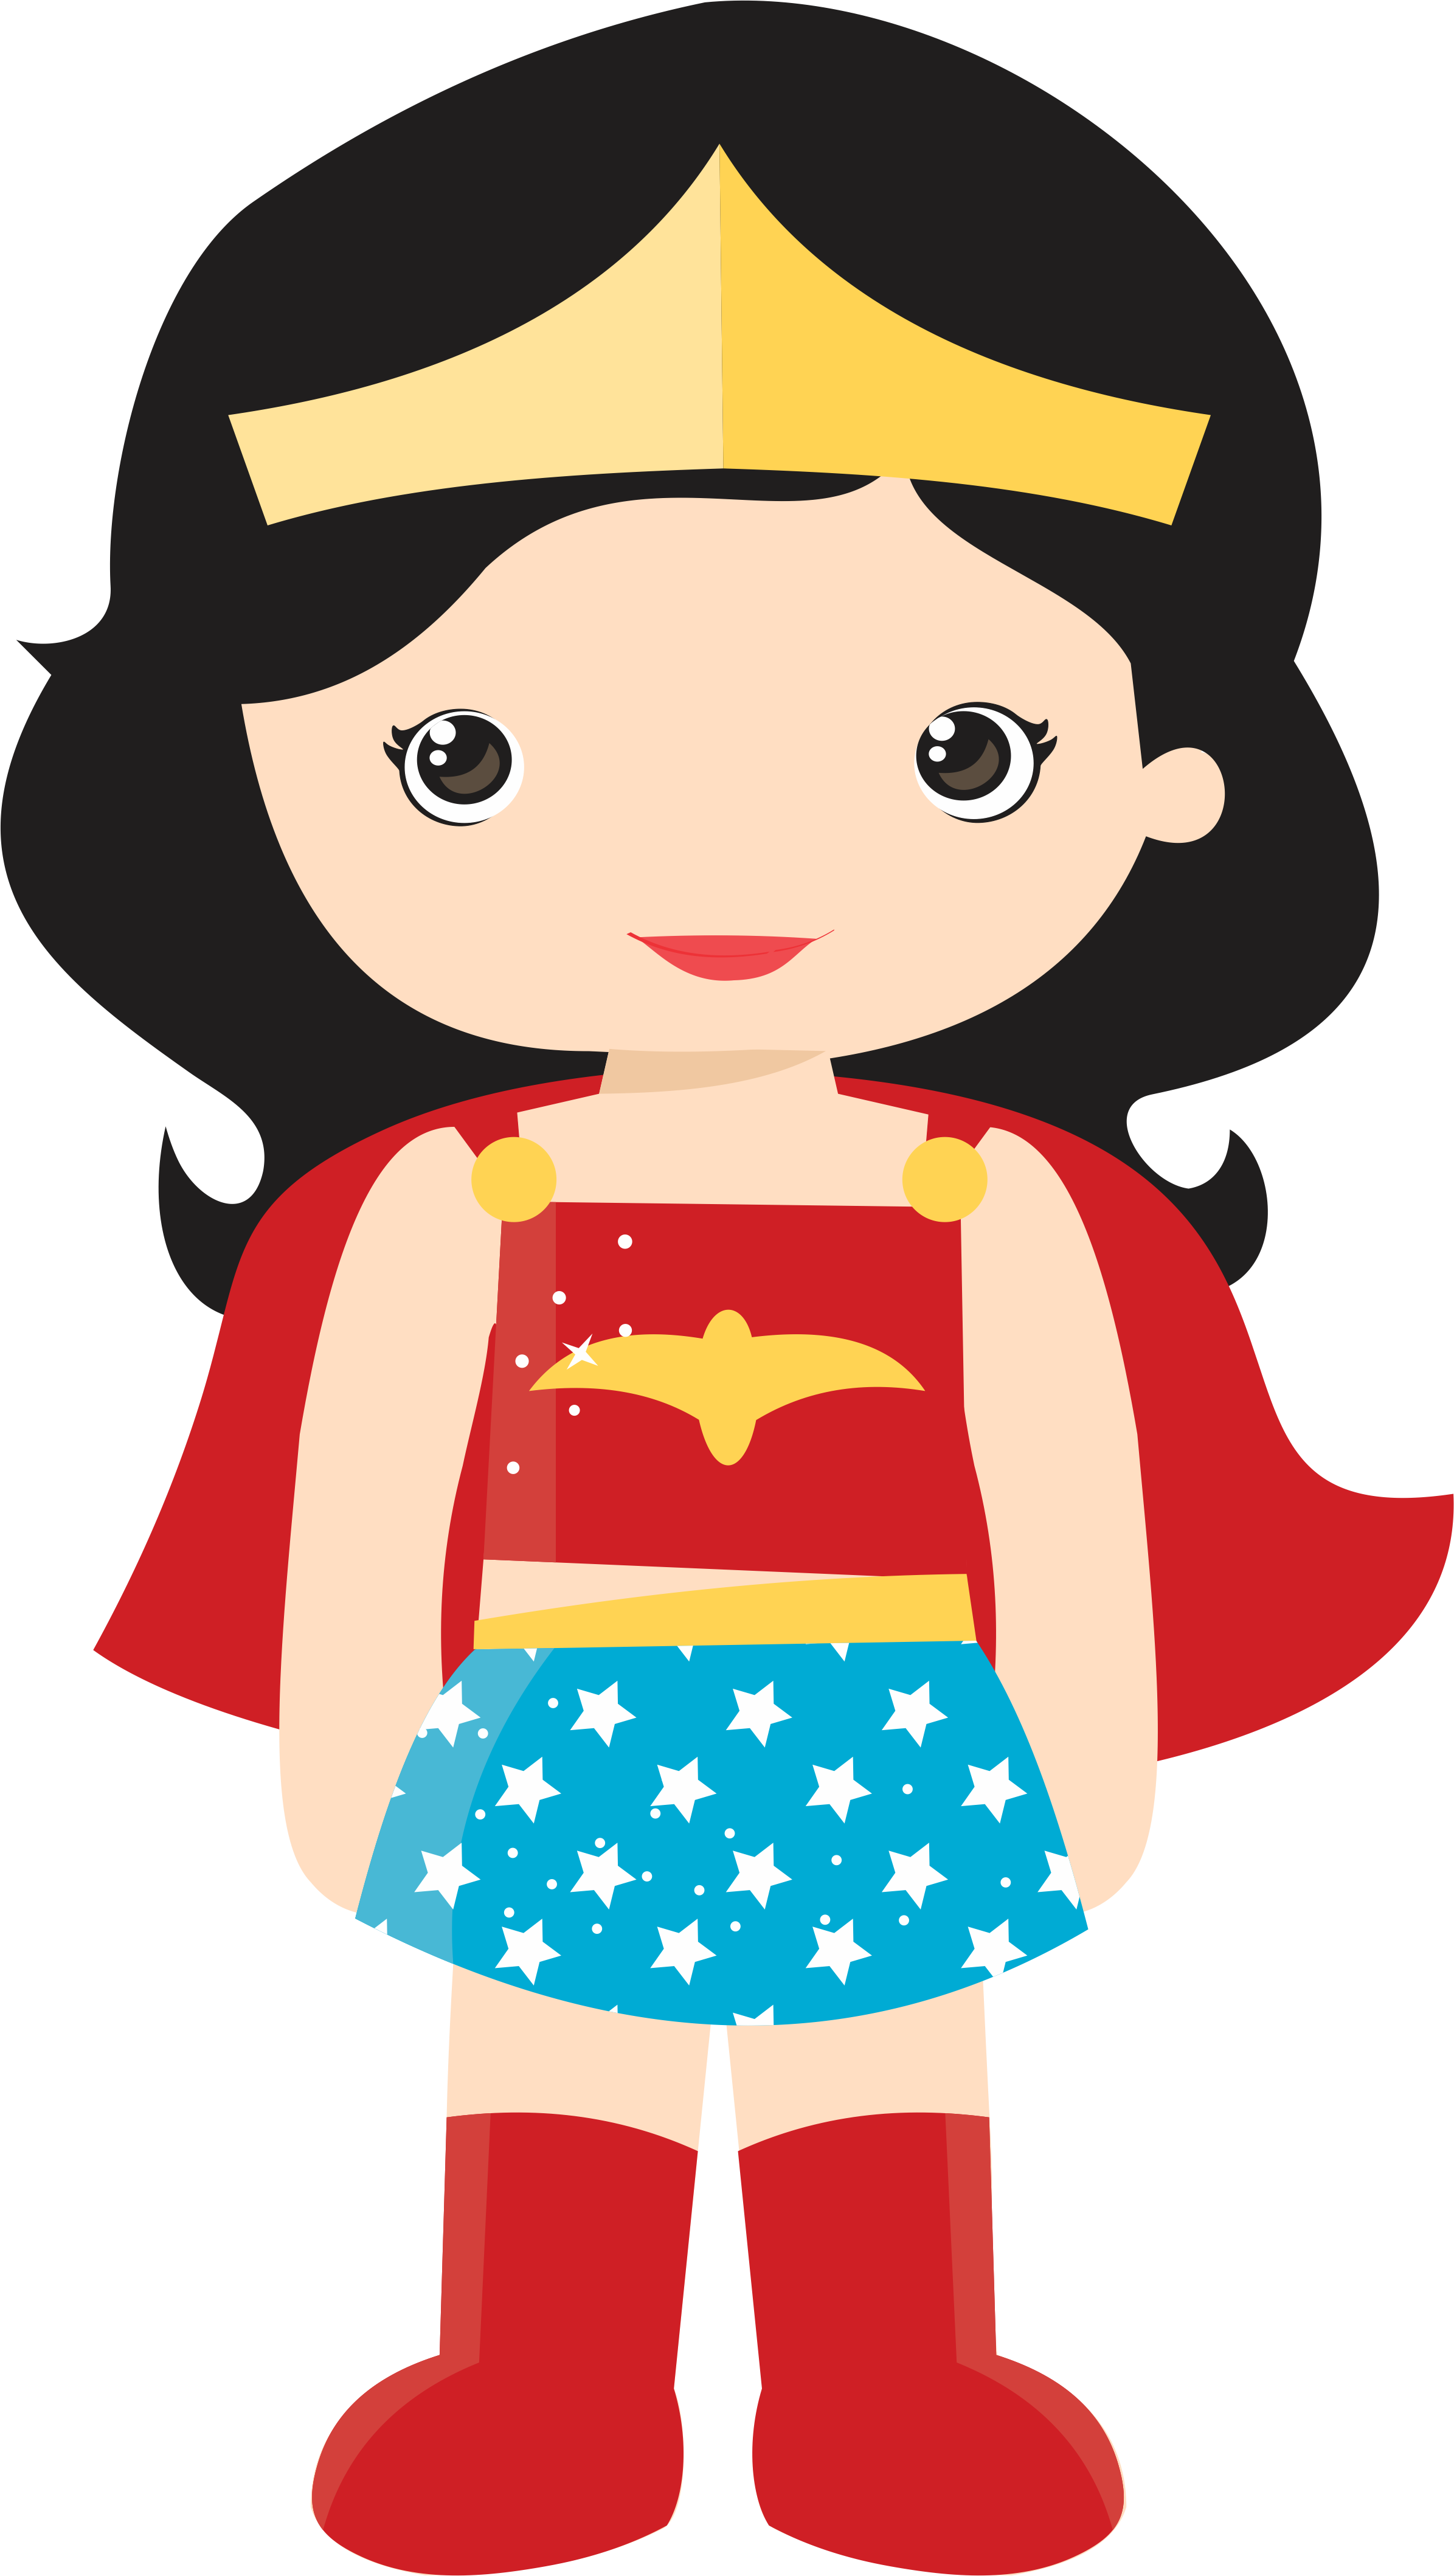 Supergirl clipart flying cape, Supergirl flying cape.